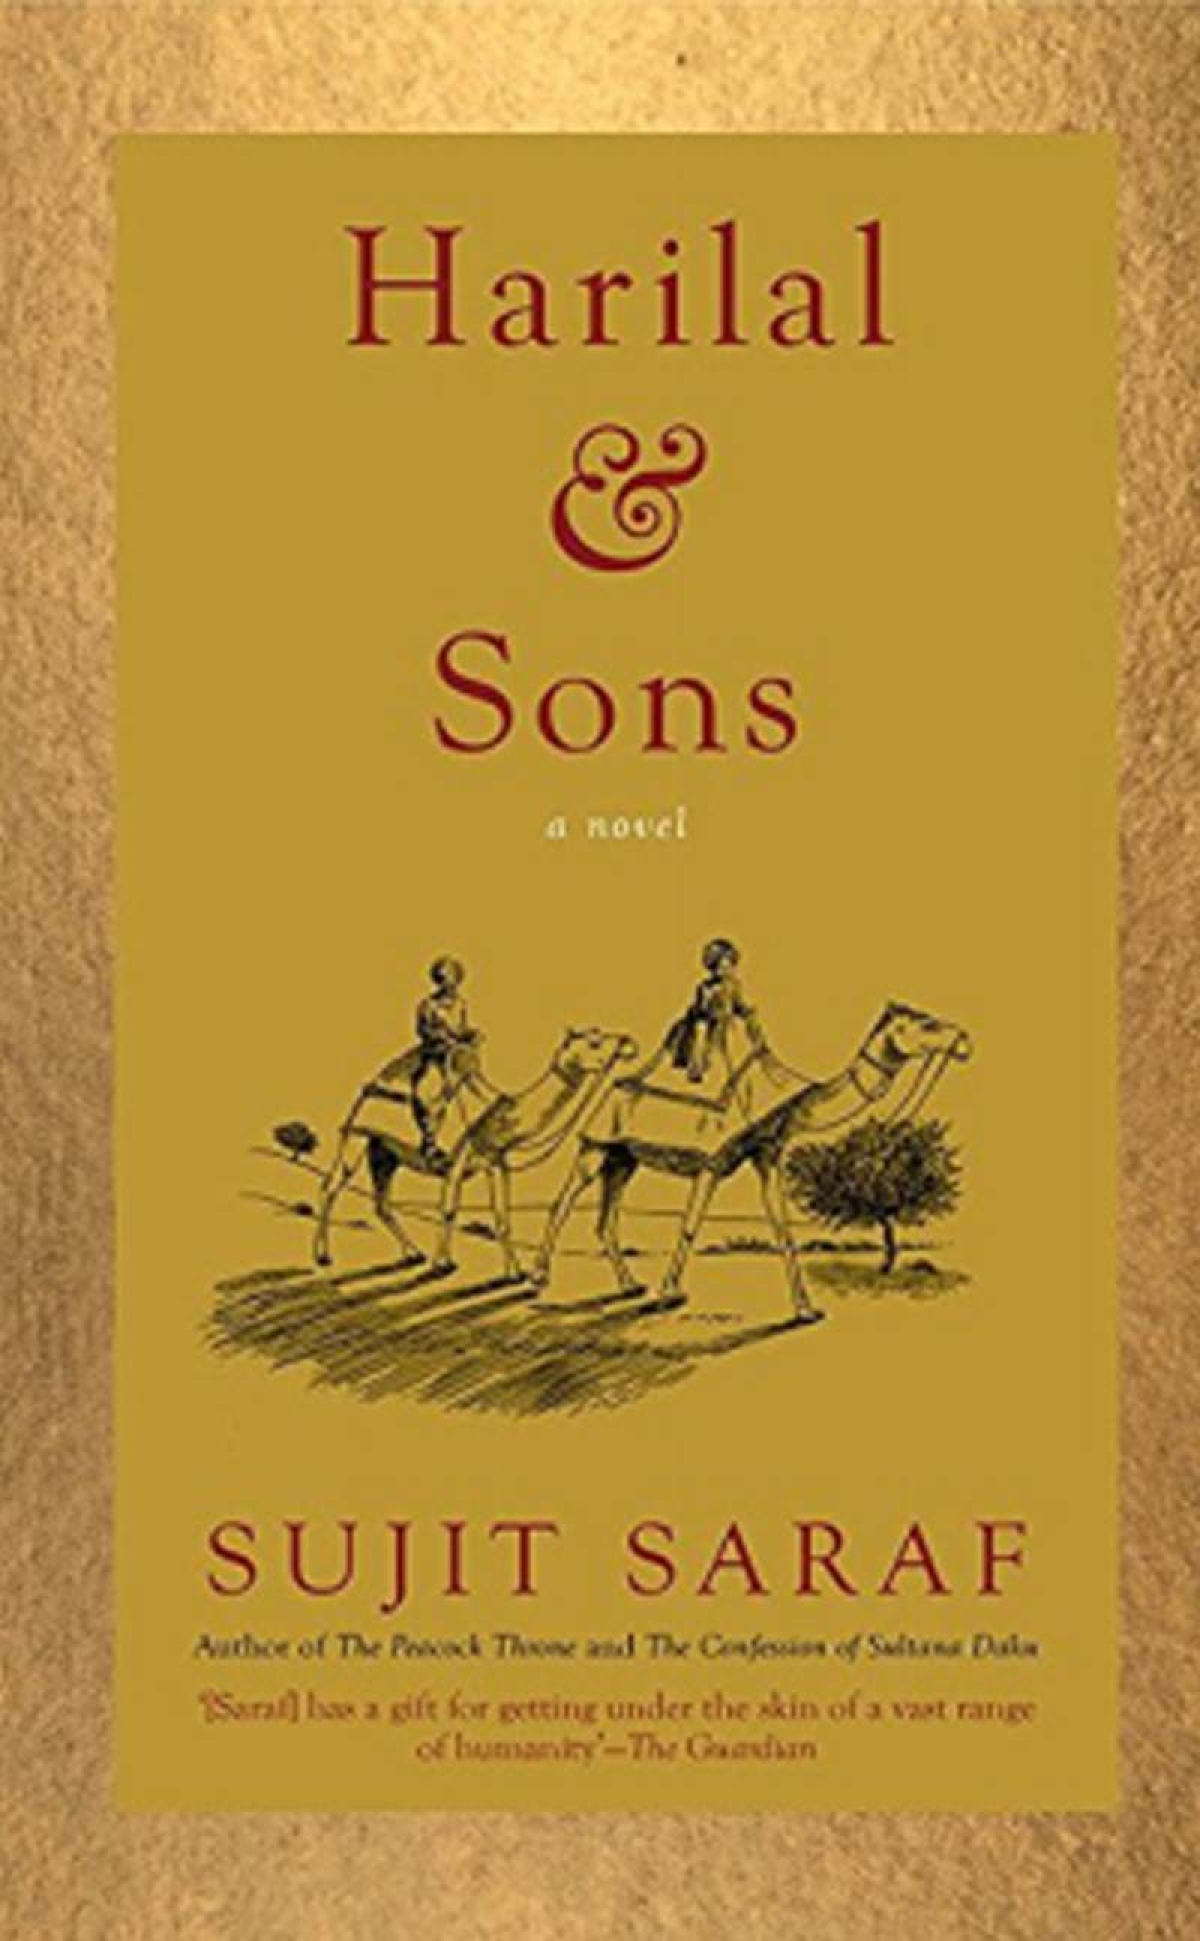 Harilal & Sons: A Novel- Review